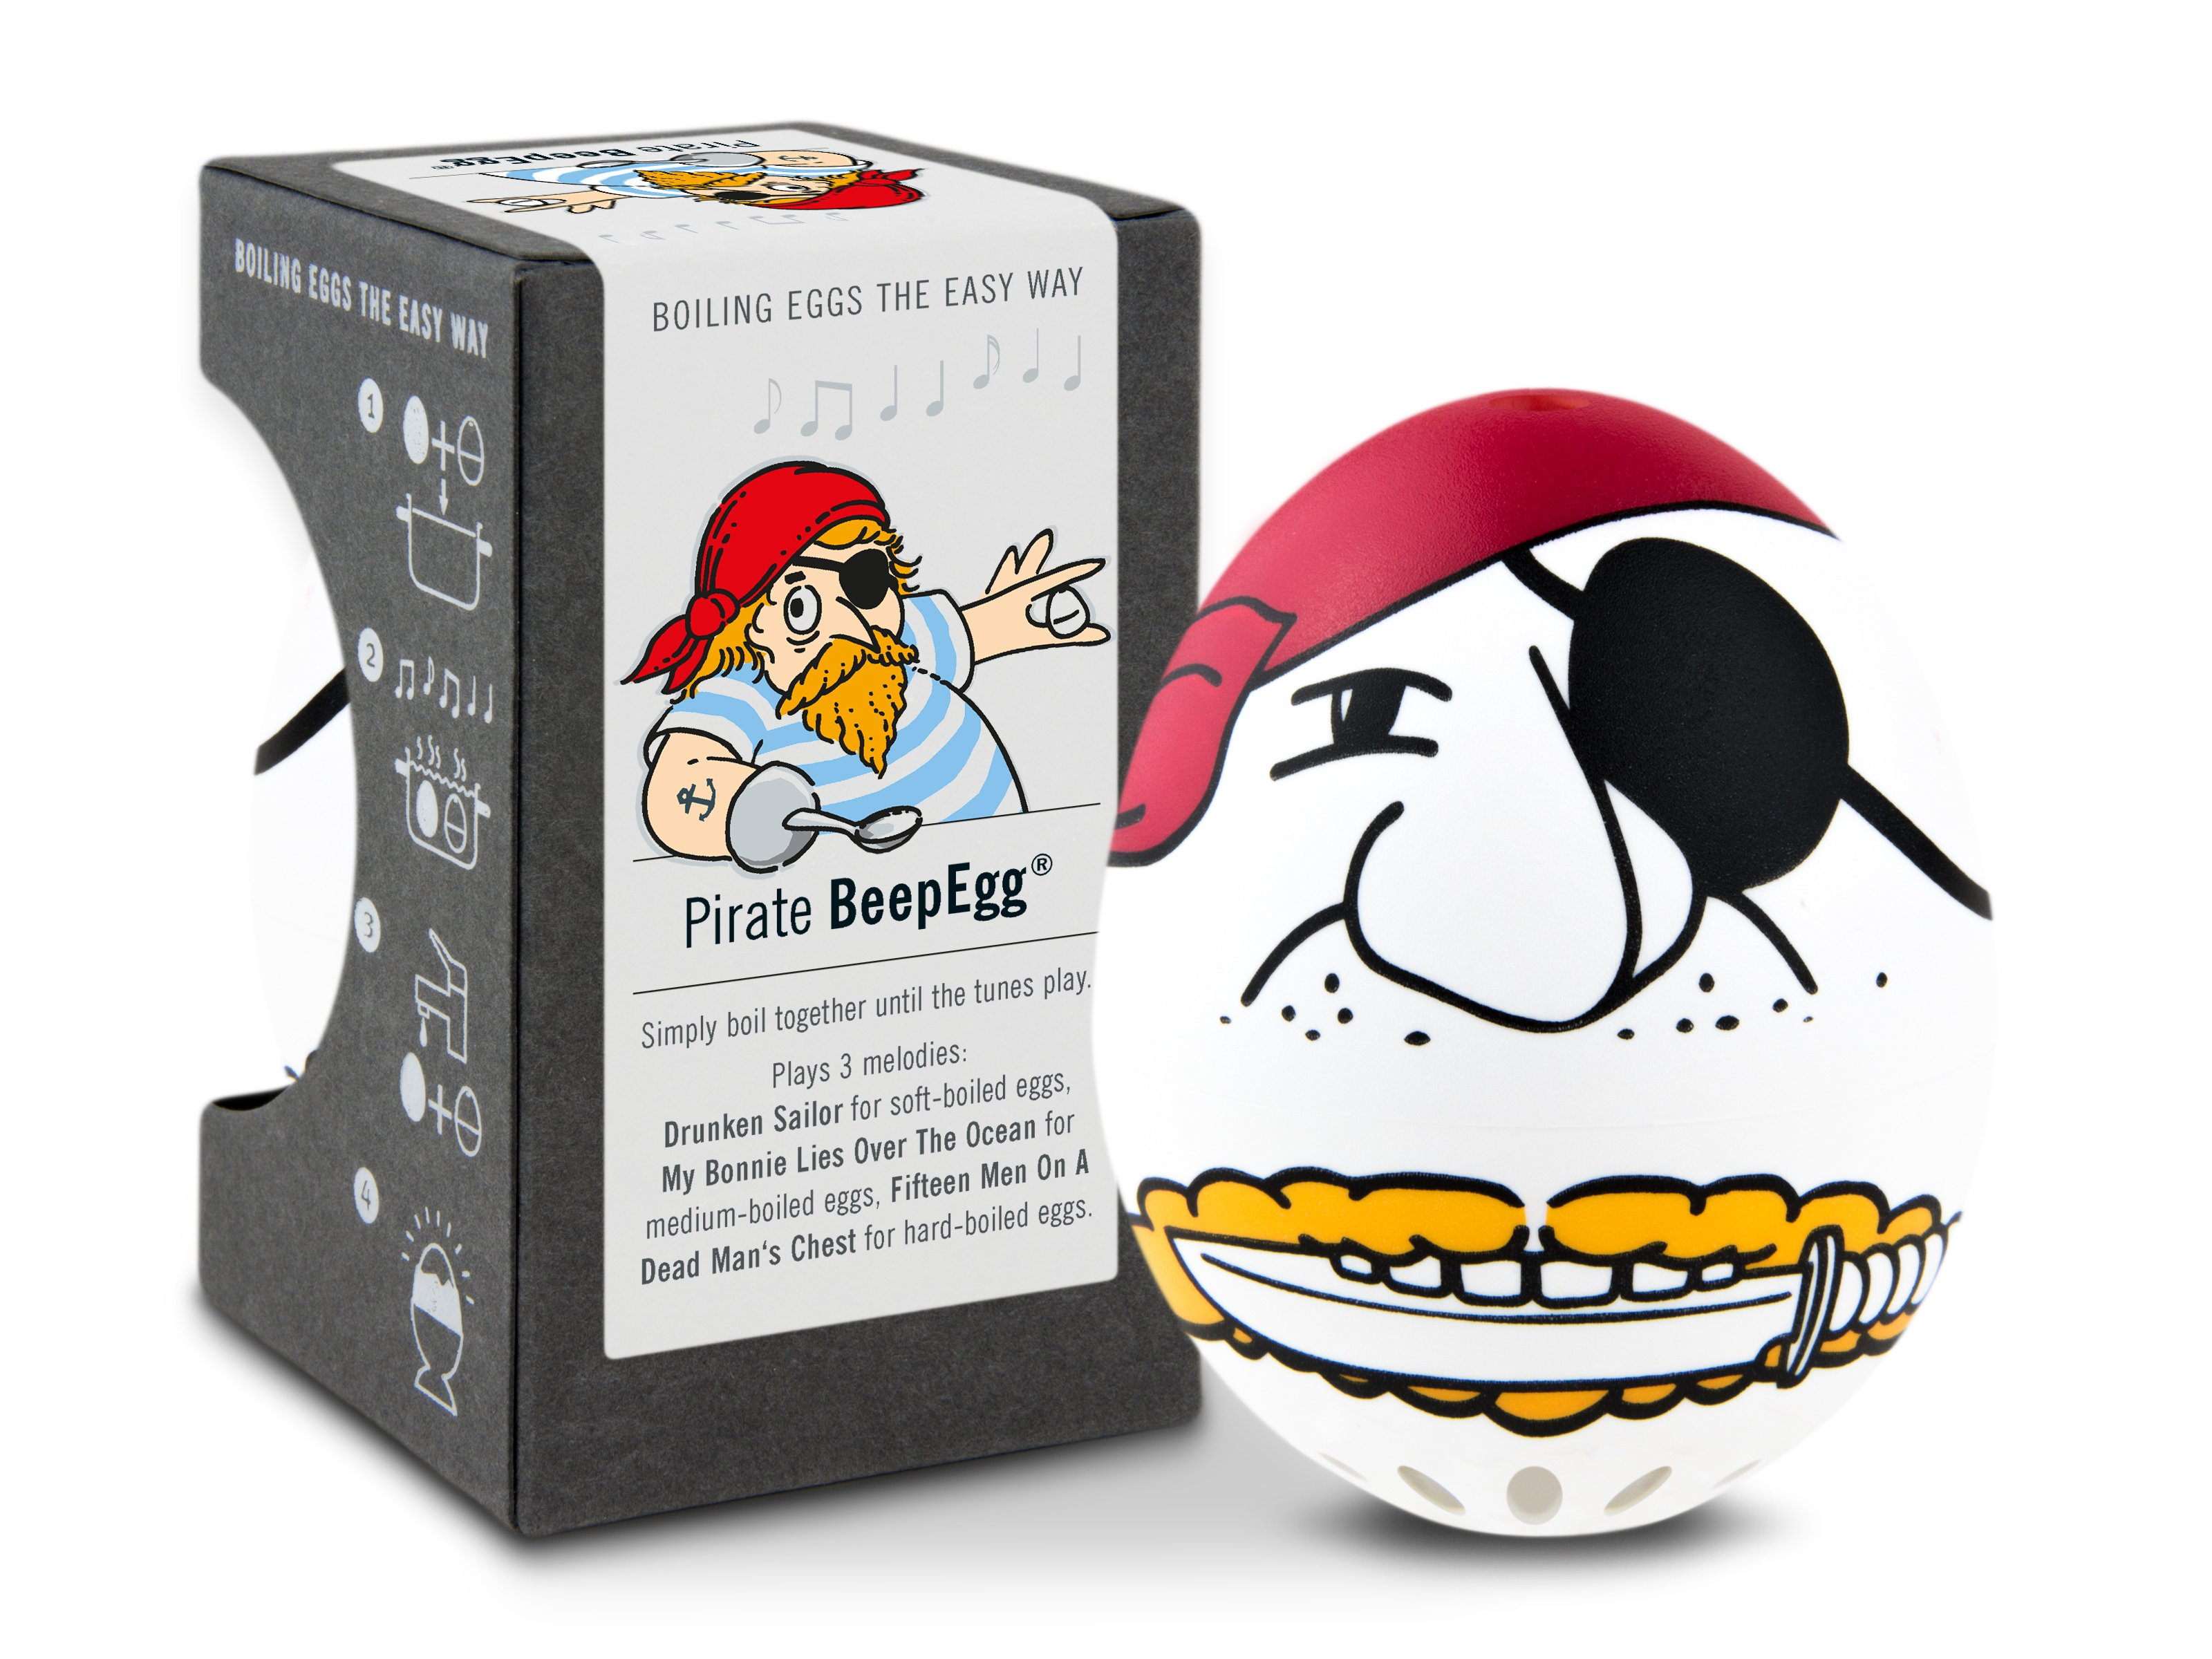 BeepEgg A004690 Musical & Singing Floating Egg Timer Pirate